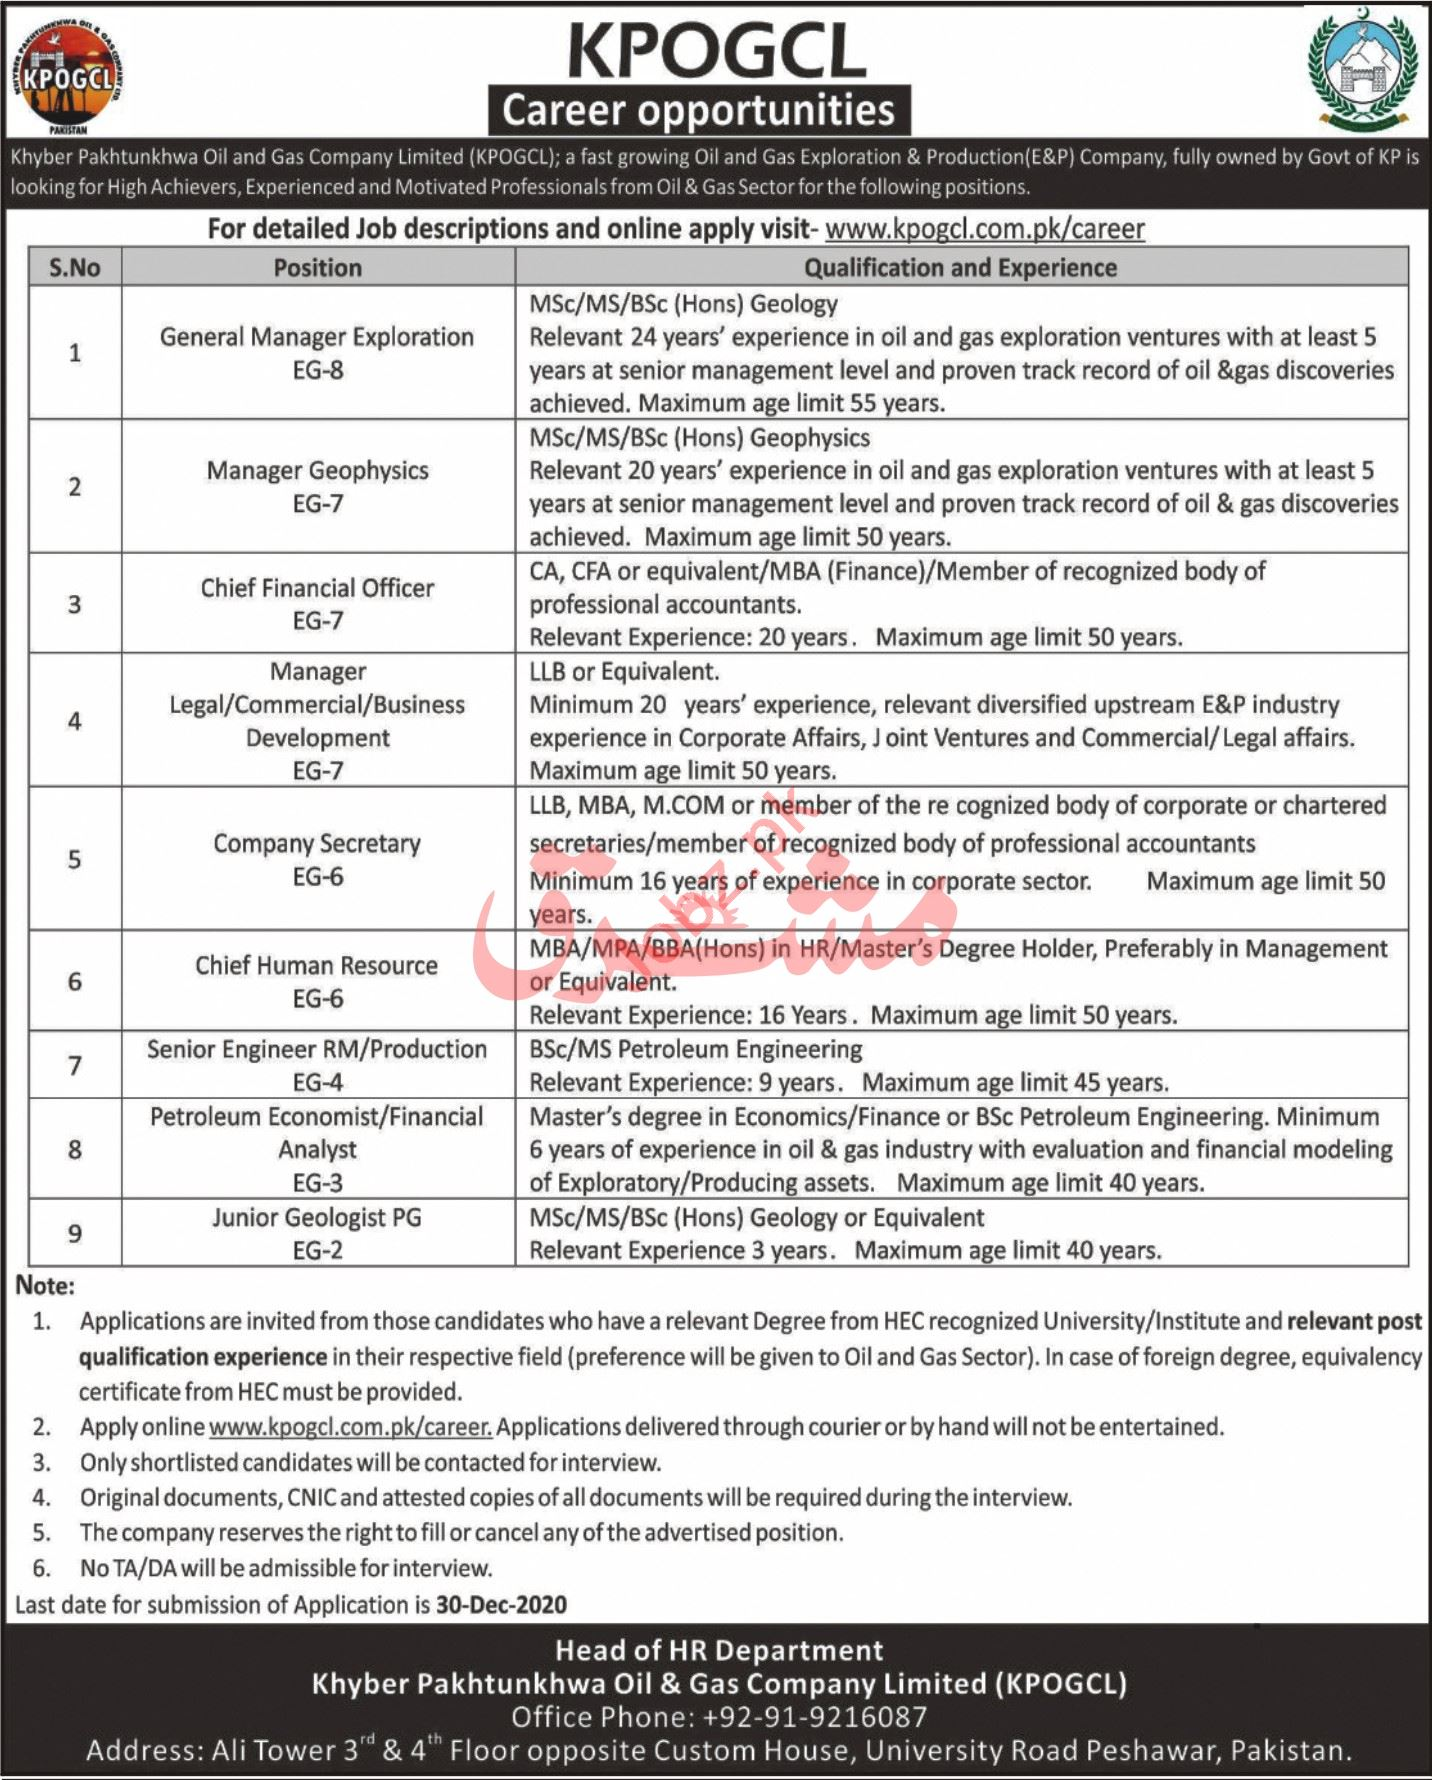 KPOGCL Oil & Gas Company Limited Jobs 2020 for Managers